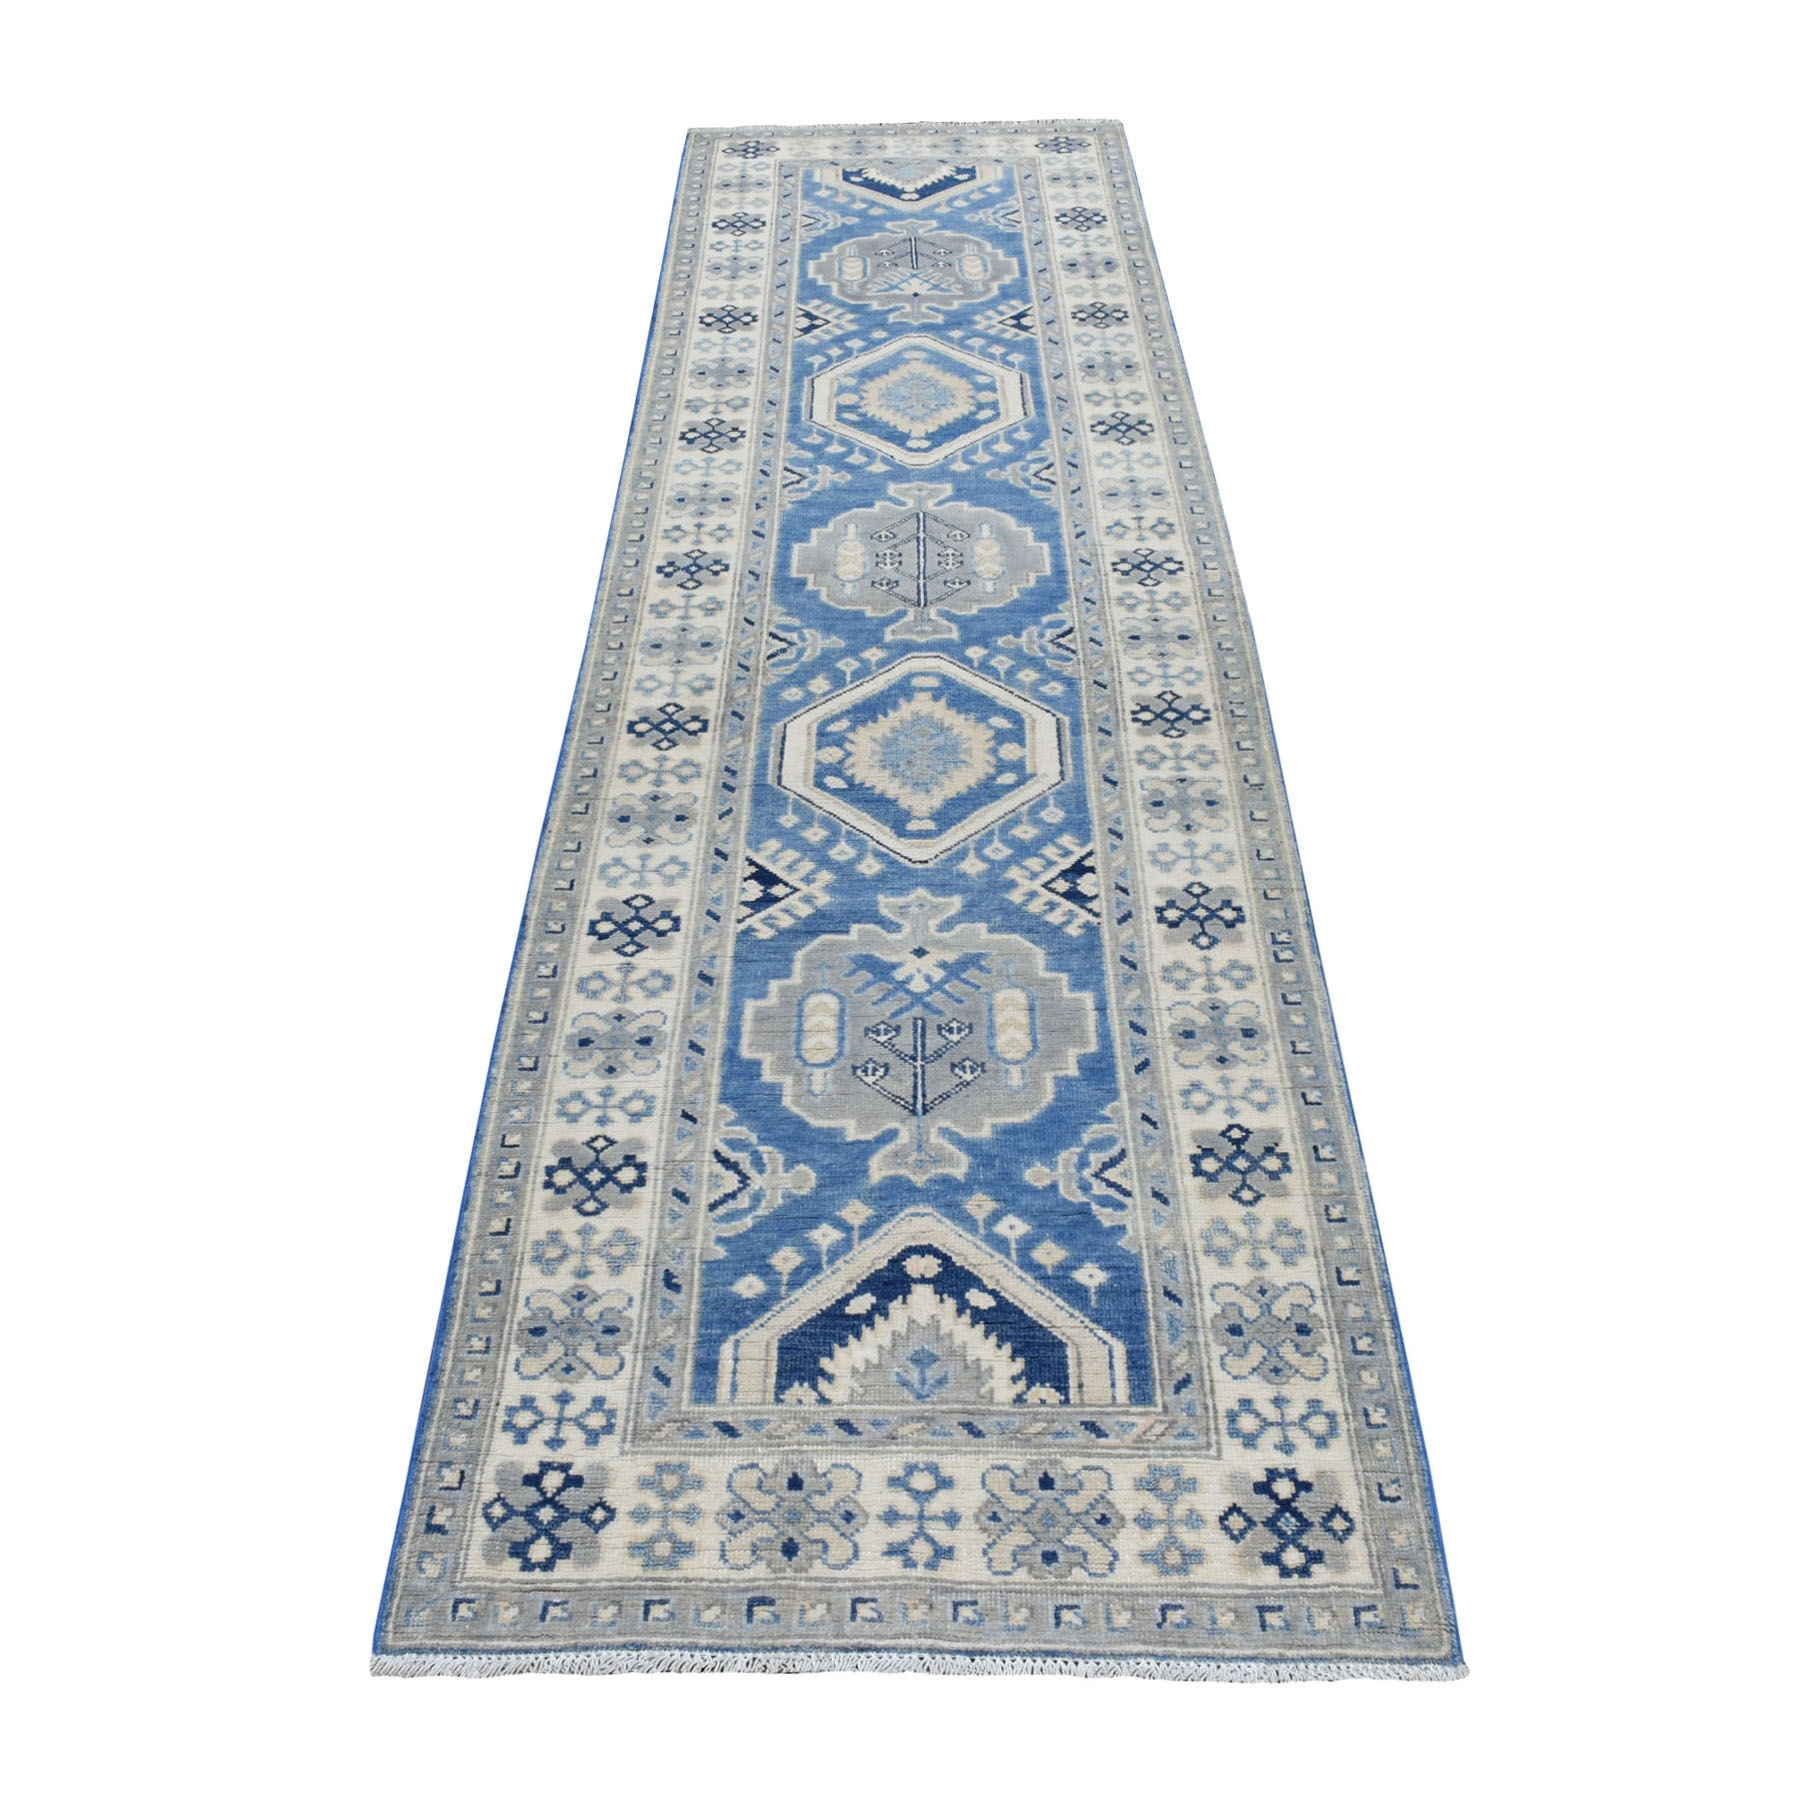 "2'9""x9'10"" Blue Vintage Look Kazak Organic Wool Tribal Design Hand Knotted Runner Oriental Rug"